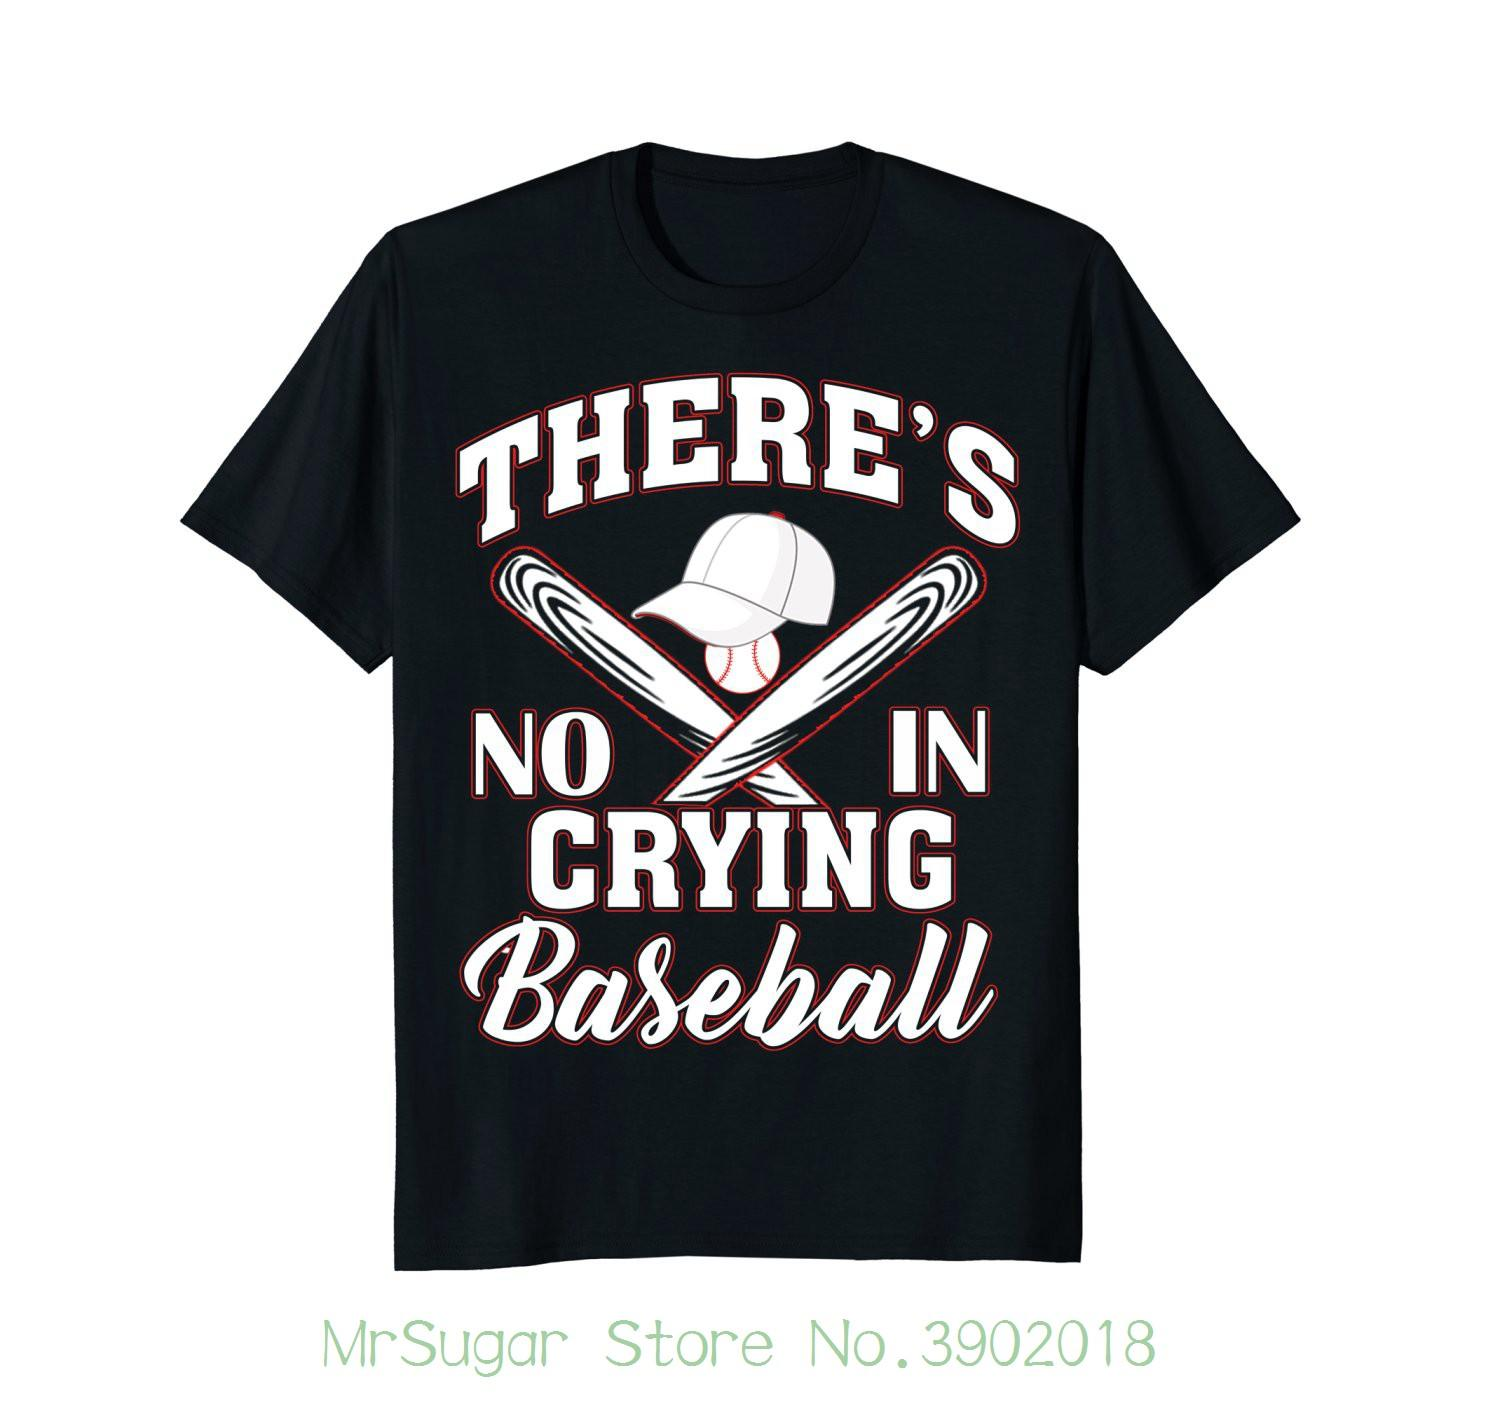 127789e28 There's No Crying In Baseball T-shirt Gift Tshirt Men Black Short Sleeve  Cotton Hip Hop T-shirt Print Tee Shirts